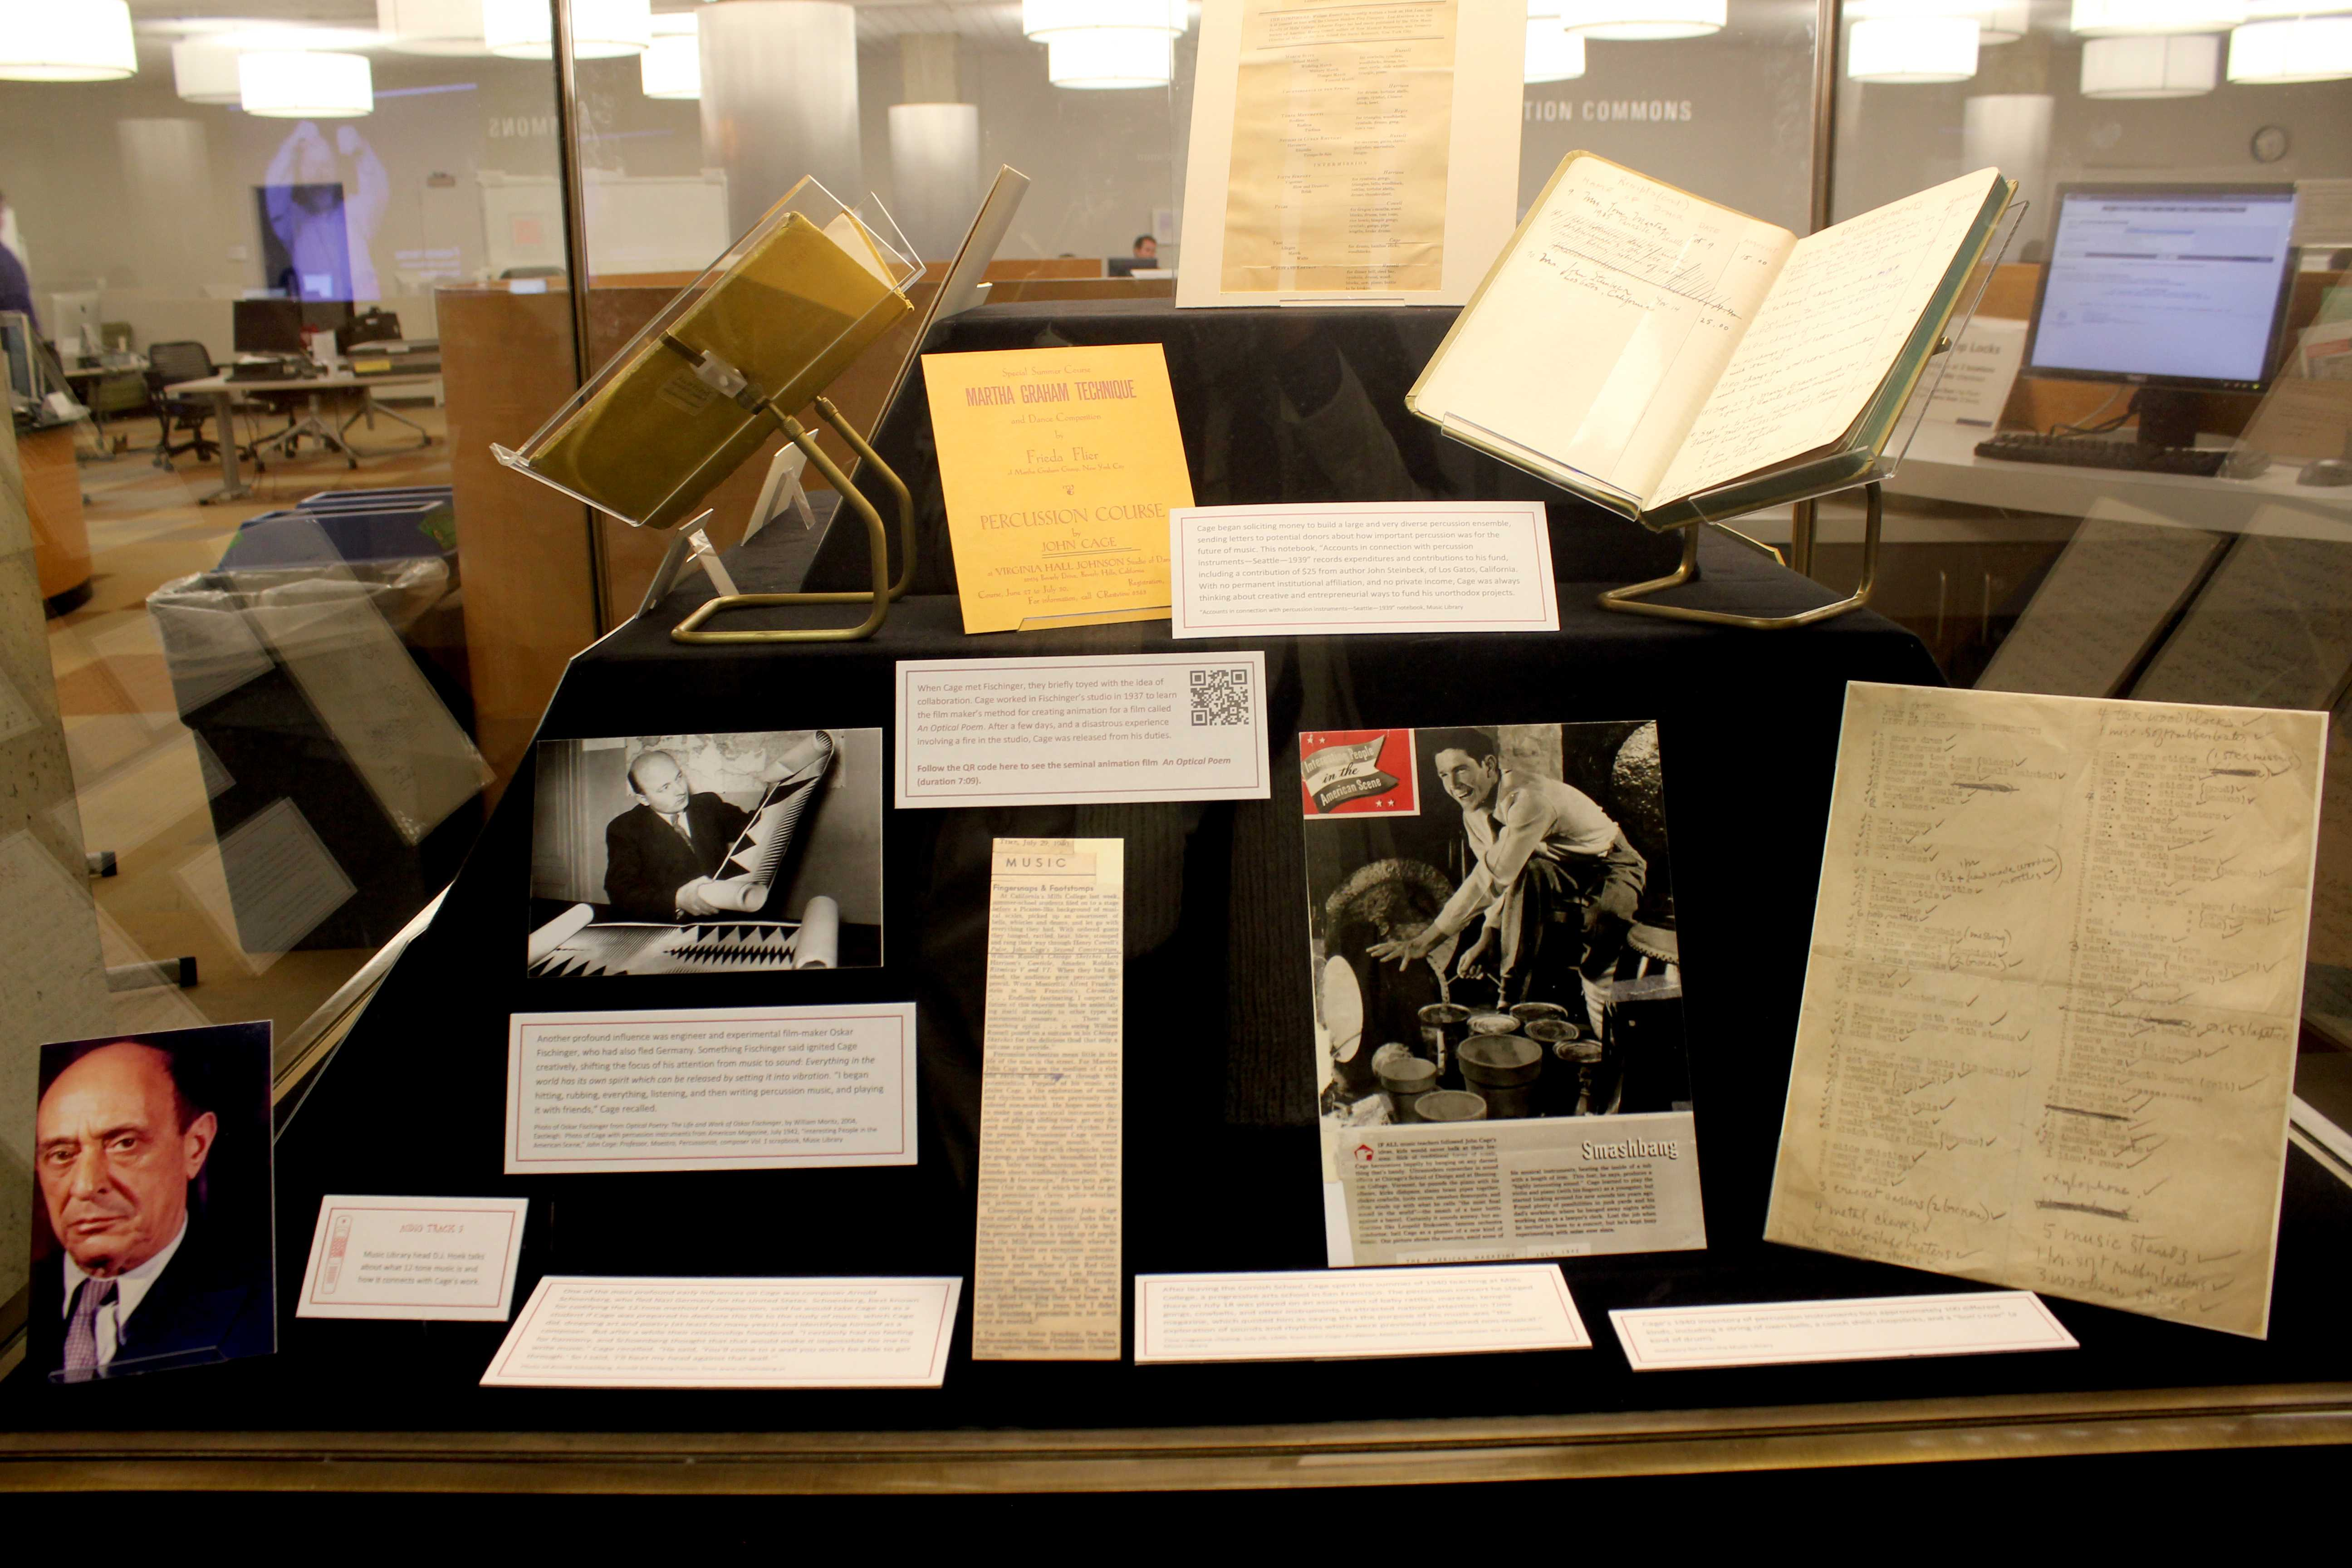 John Cage's original compositions are displayed in an exhibit at University Library. Featured along with his sheet music are old letters and notes that Cage both sent and received throughout his lifetime.